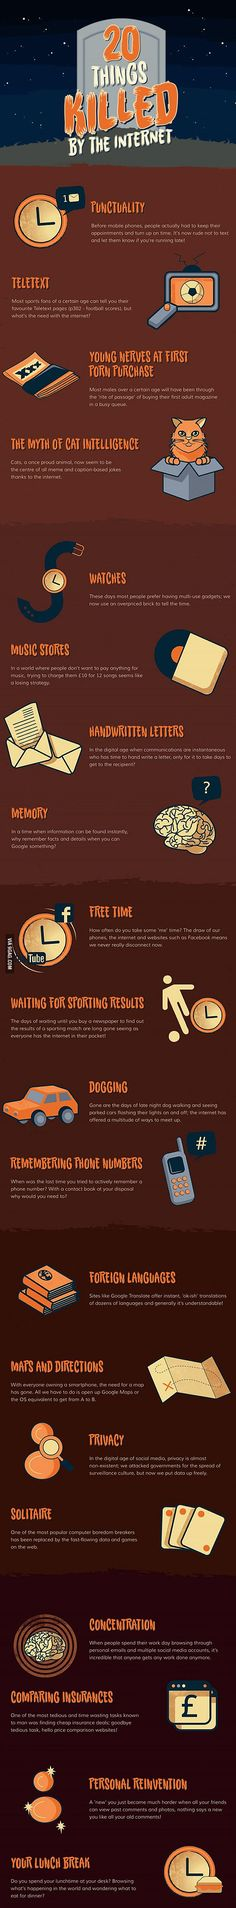 20 Things That The Internet Has Killed... 21 including my social life skills.